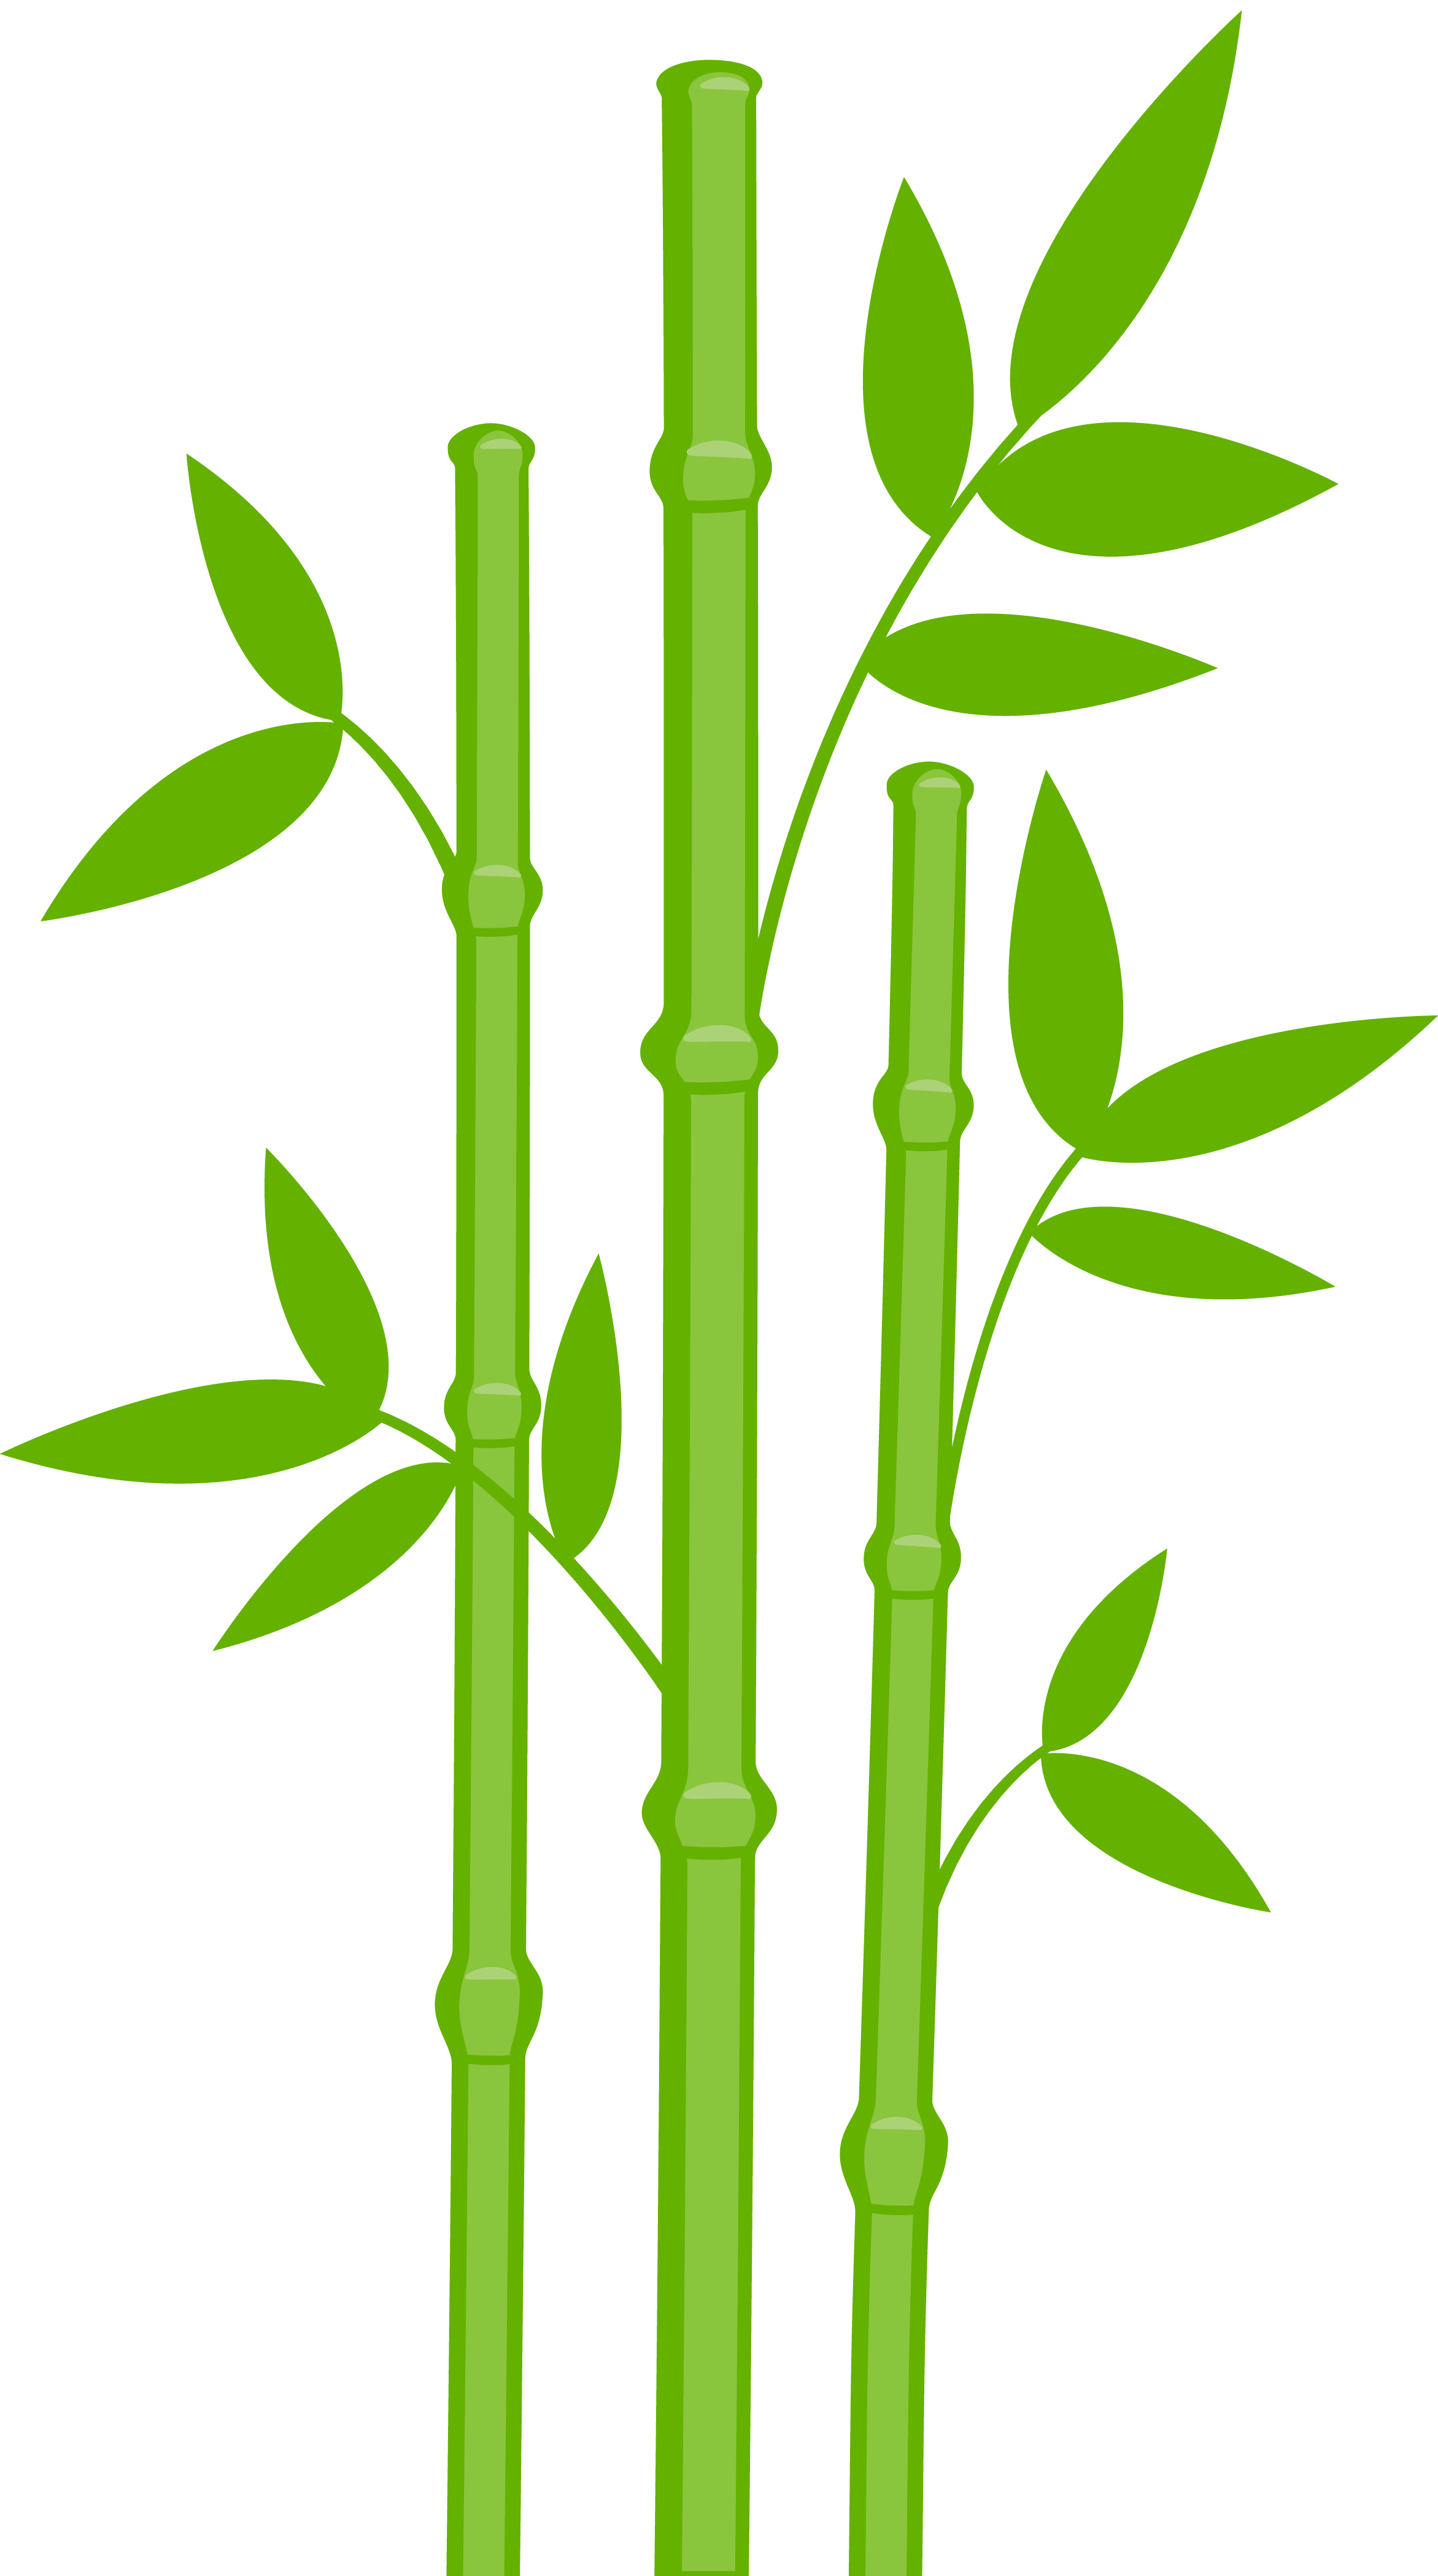 Bamboo tree clipart picture black and white stock Panda Bear 1 - bamboo group.png - Minus | Art | Pinterest | Panda ... picture black and white stock